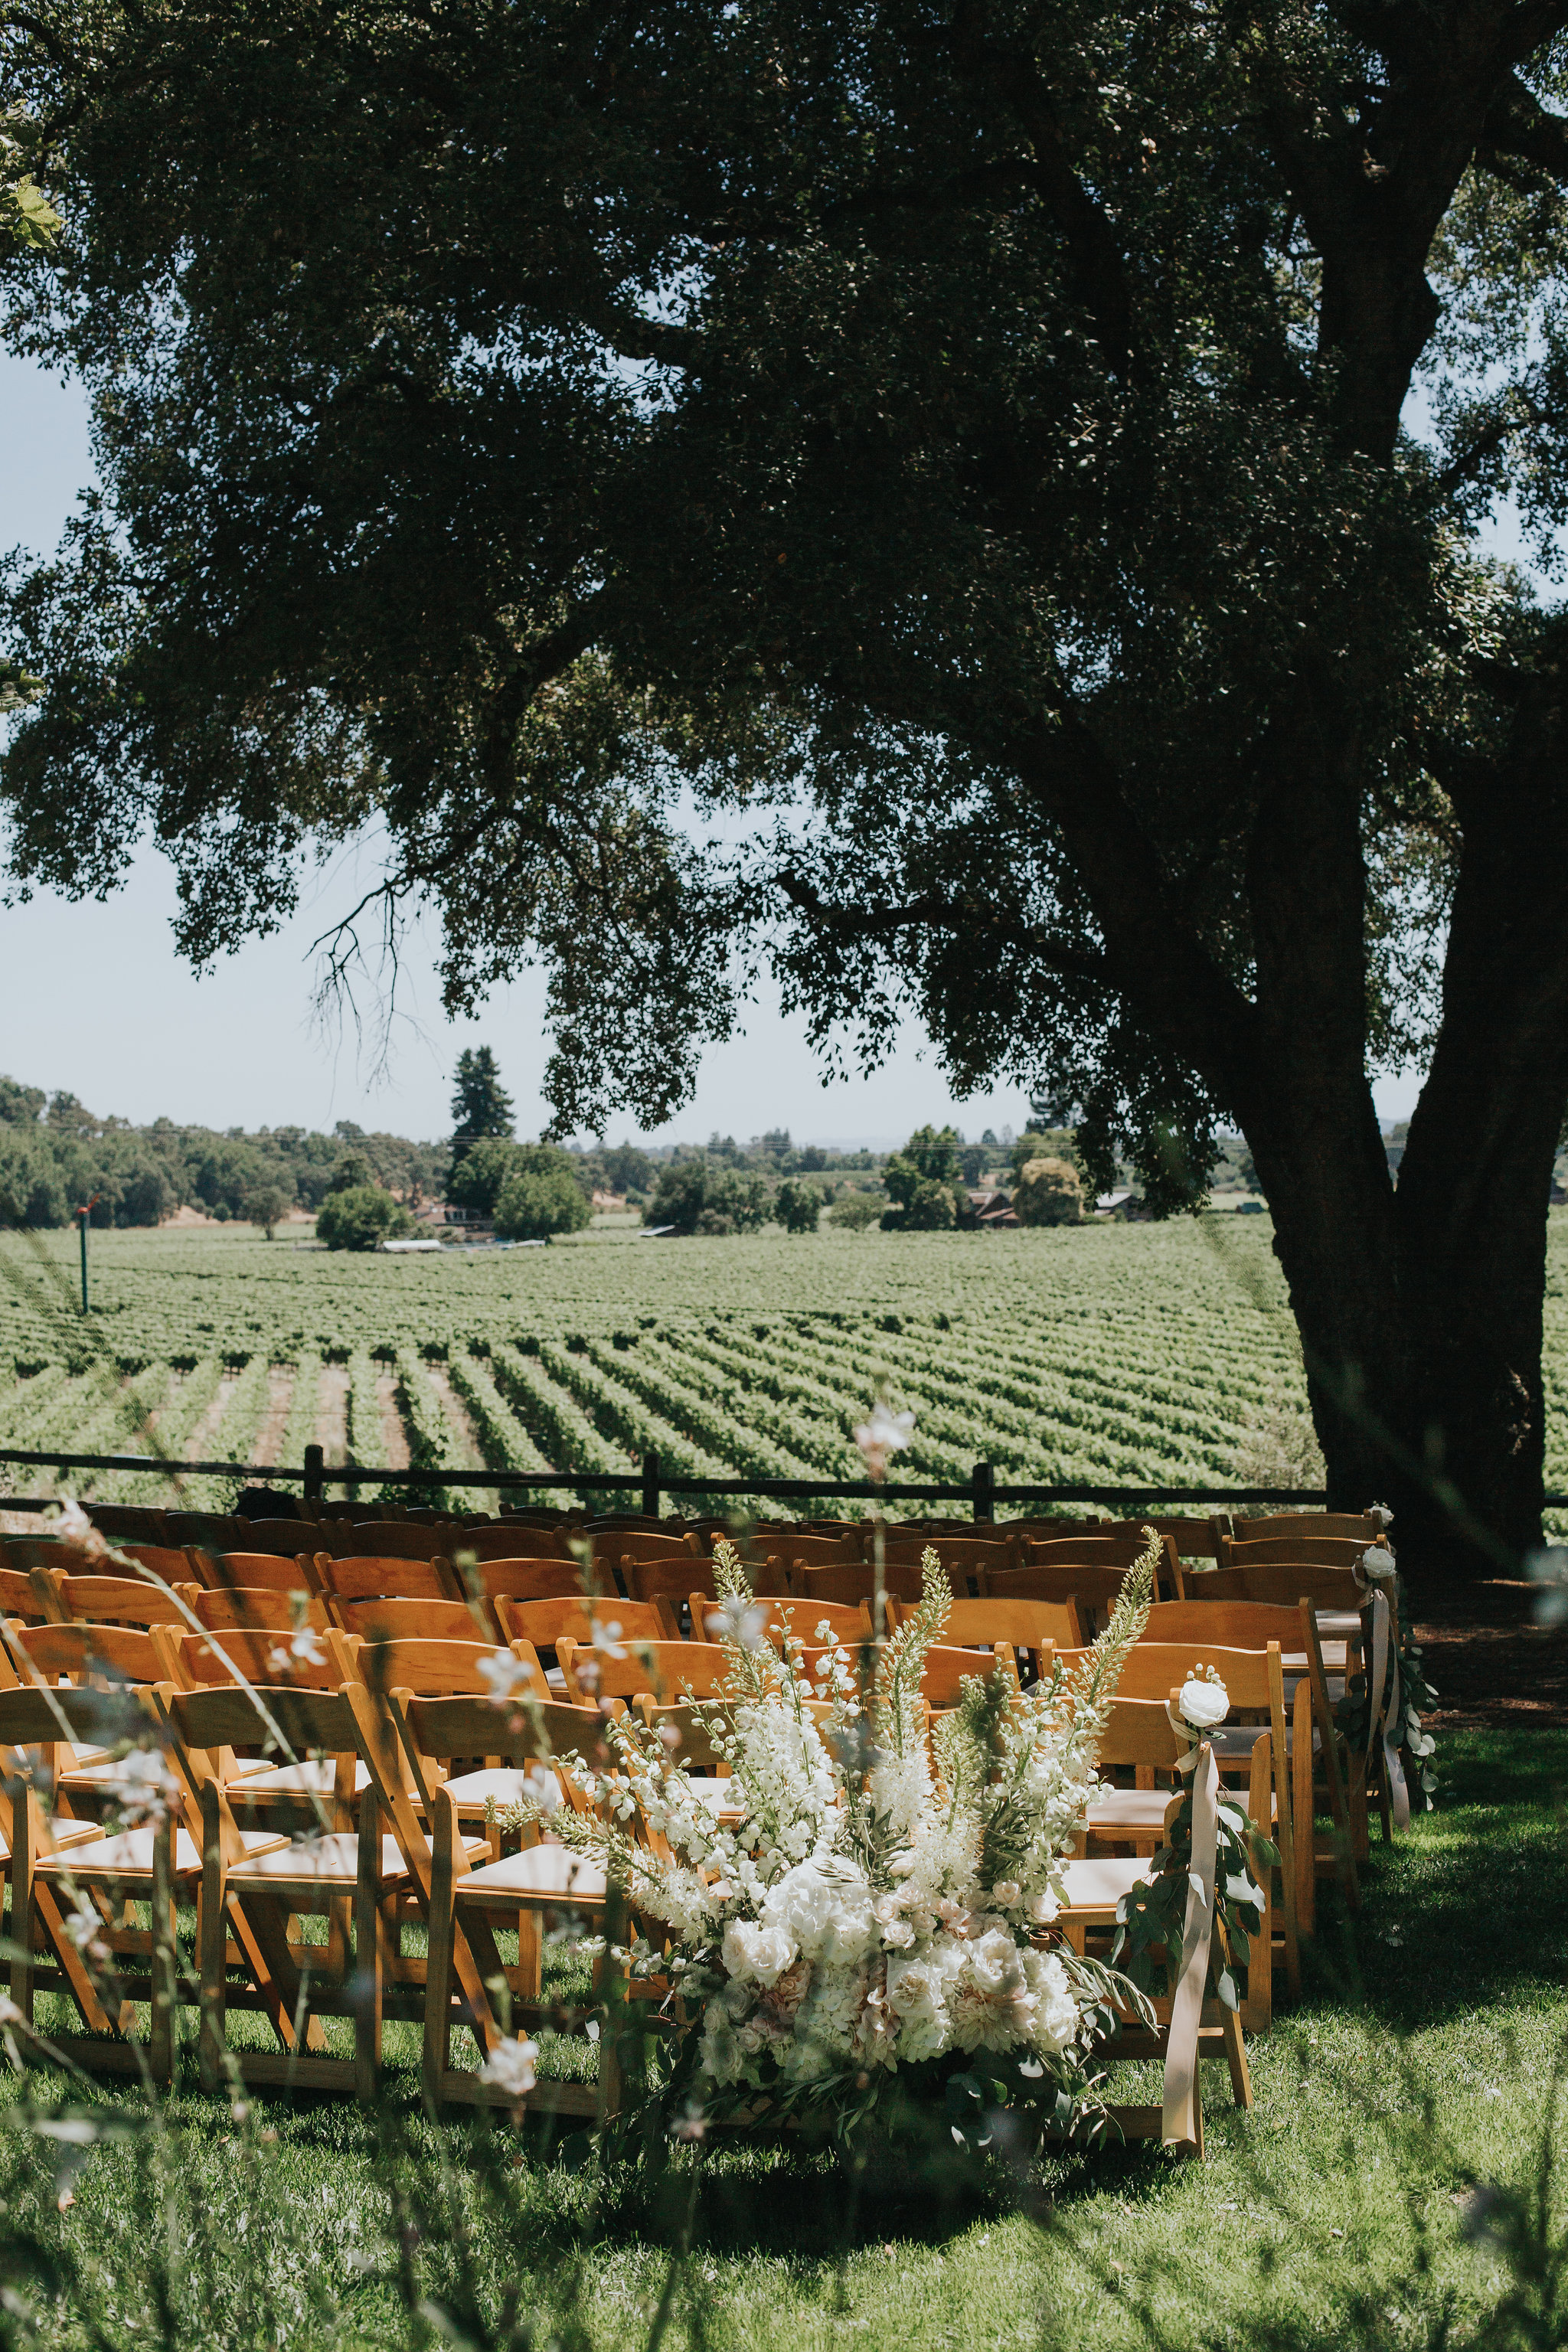 Rus-Farm-Wedding-Healdsburg-Vineyard-Oak-Tree-Ceremony-Heald-Wedding-Consulting-HWC.jpg